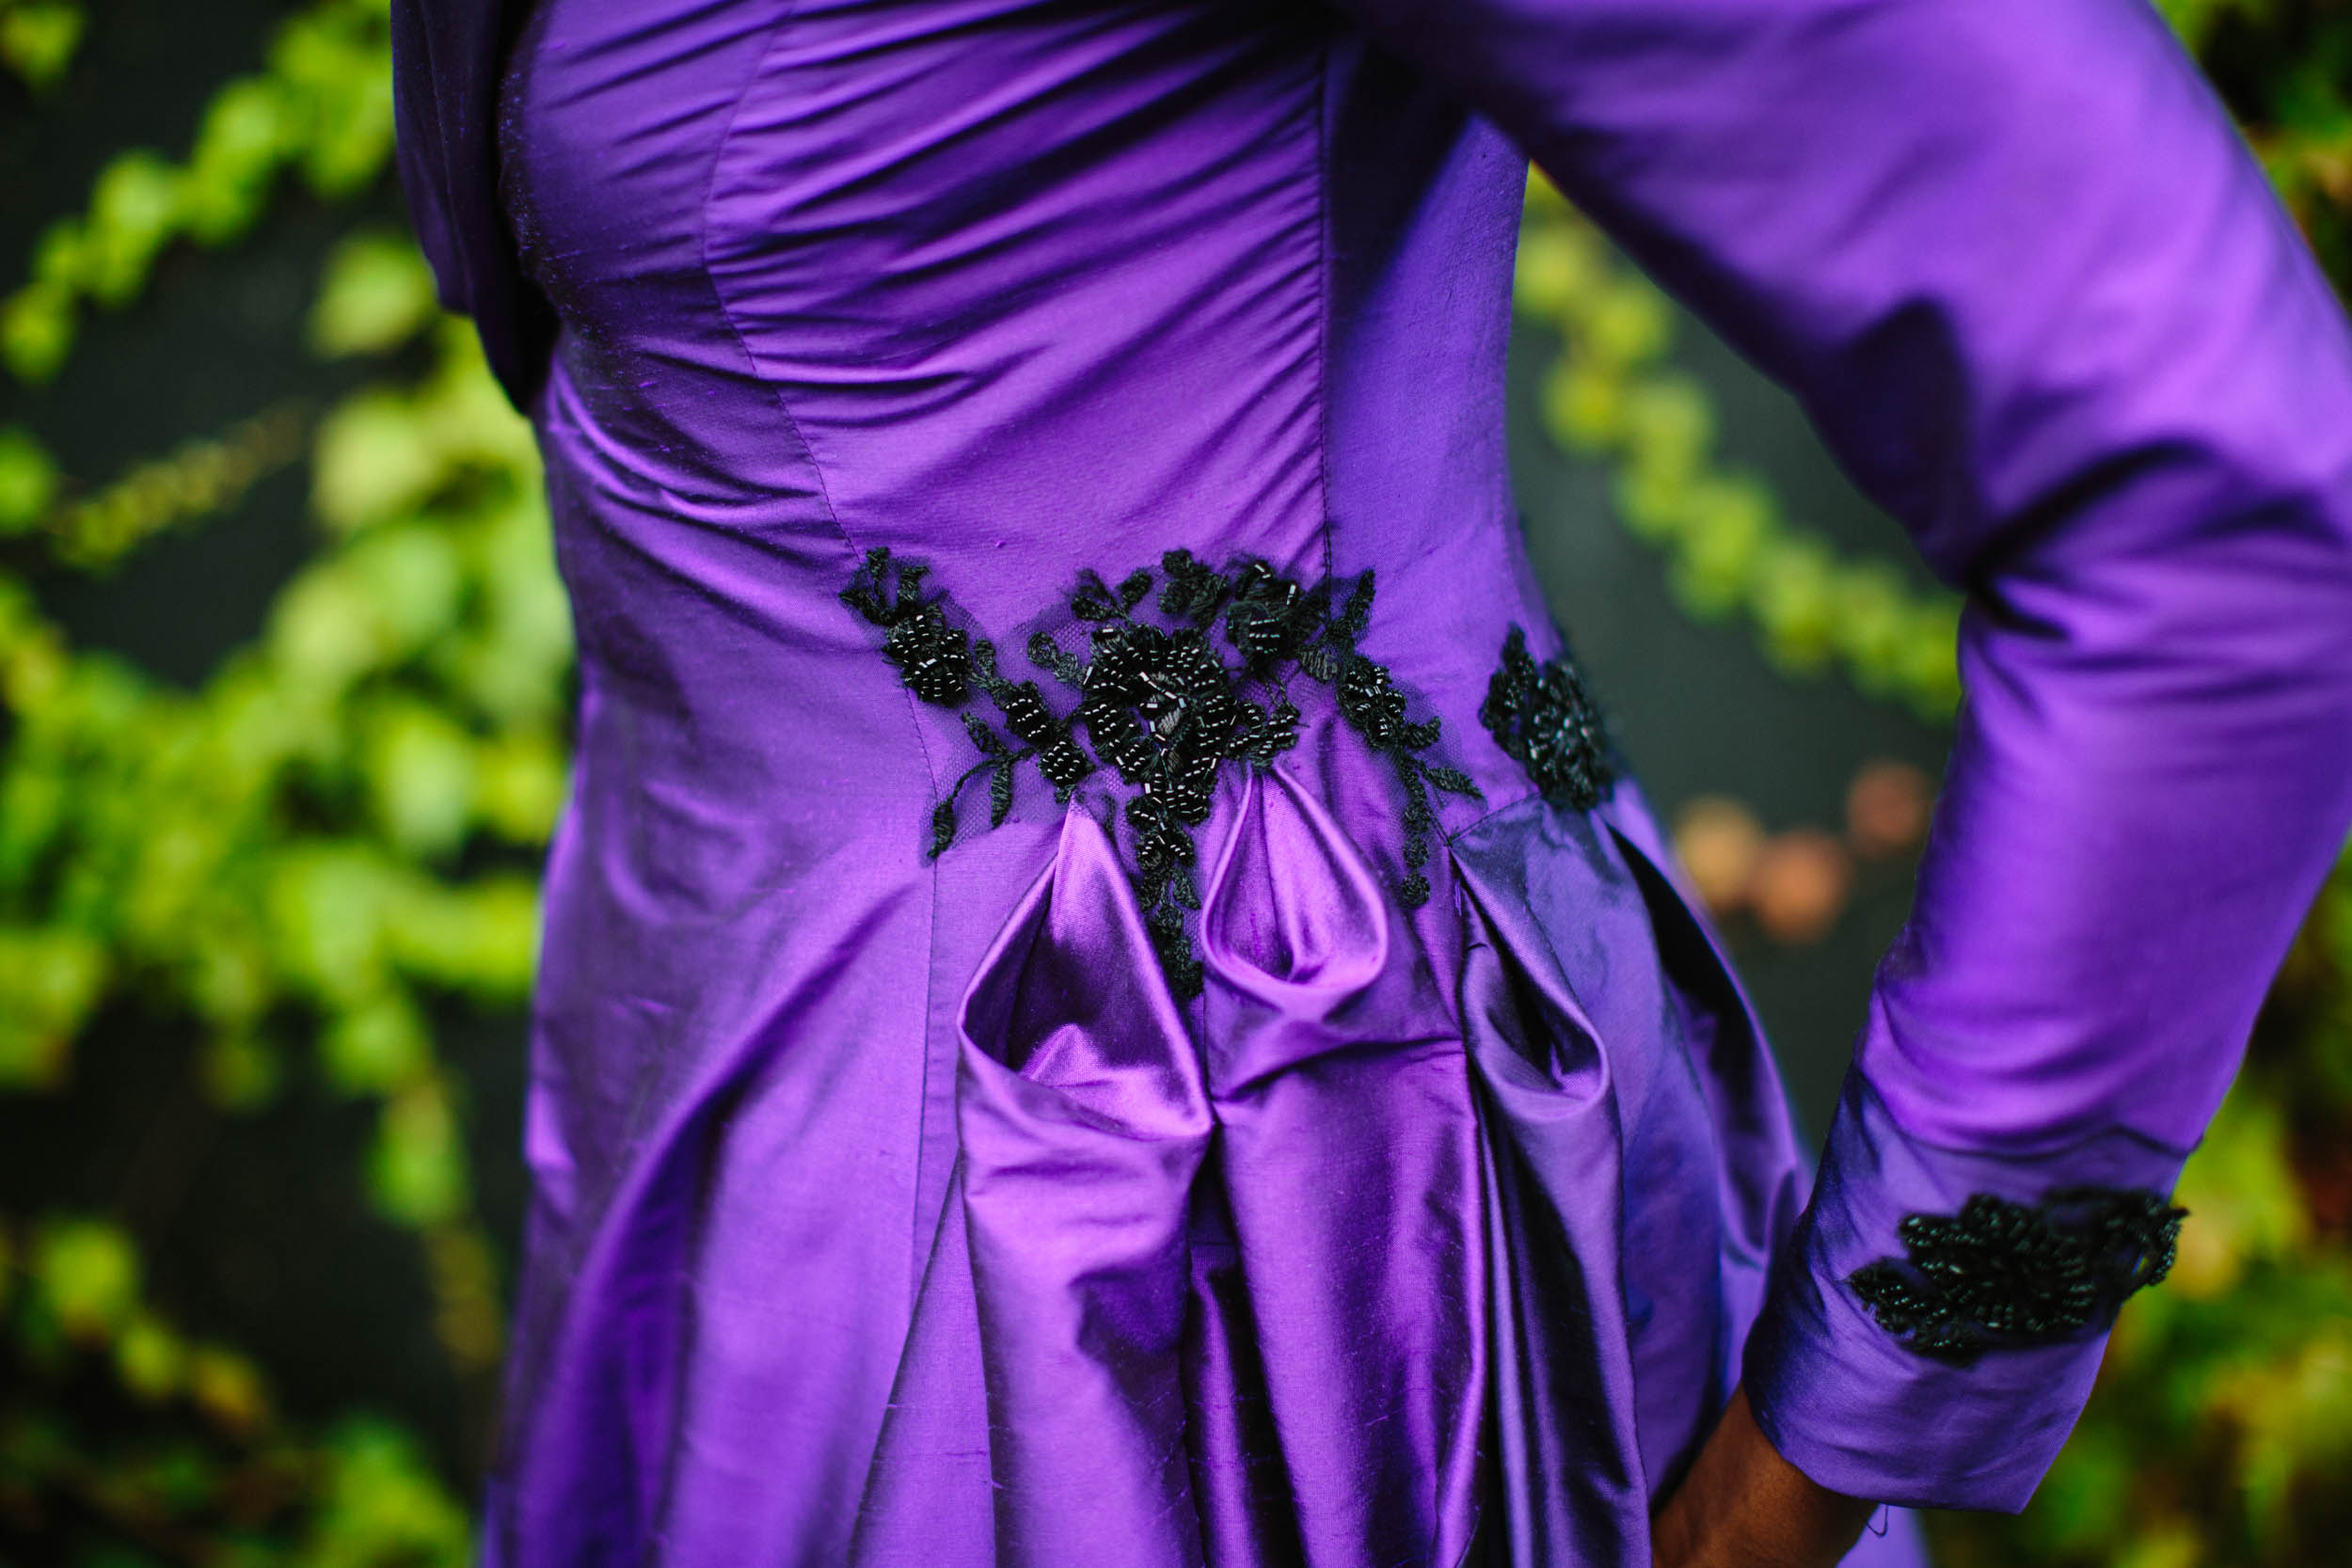 purple wedding dress - burlesque wedding - alternative bridal wear - unique wedding dress - unique wedding coat - purple wedding dress with black details